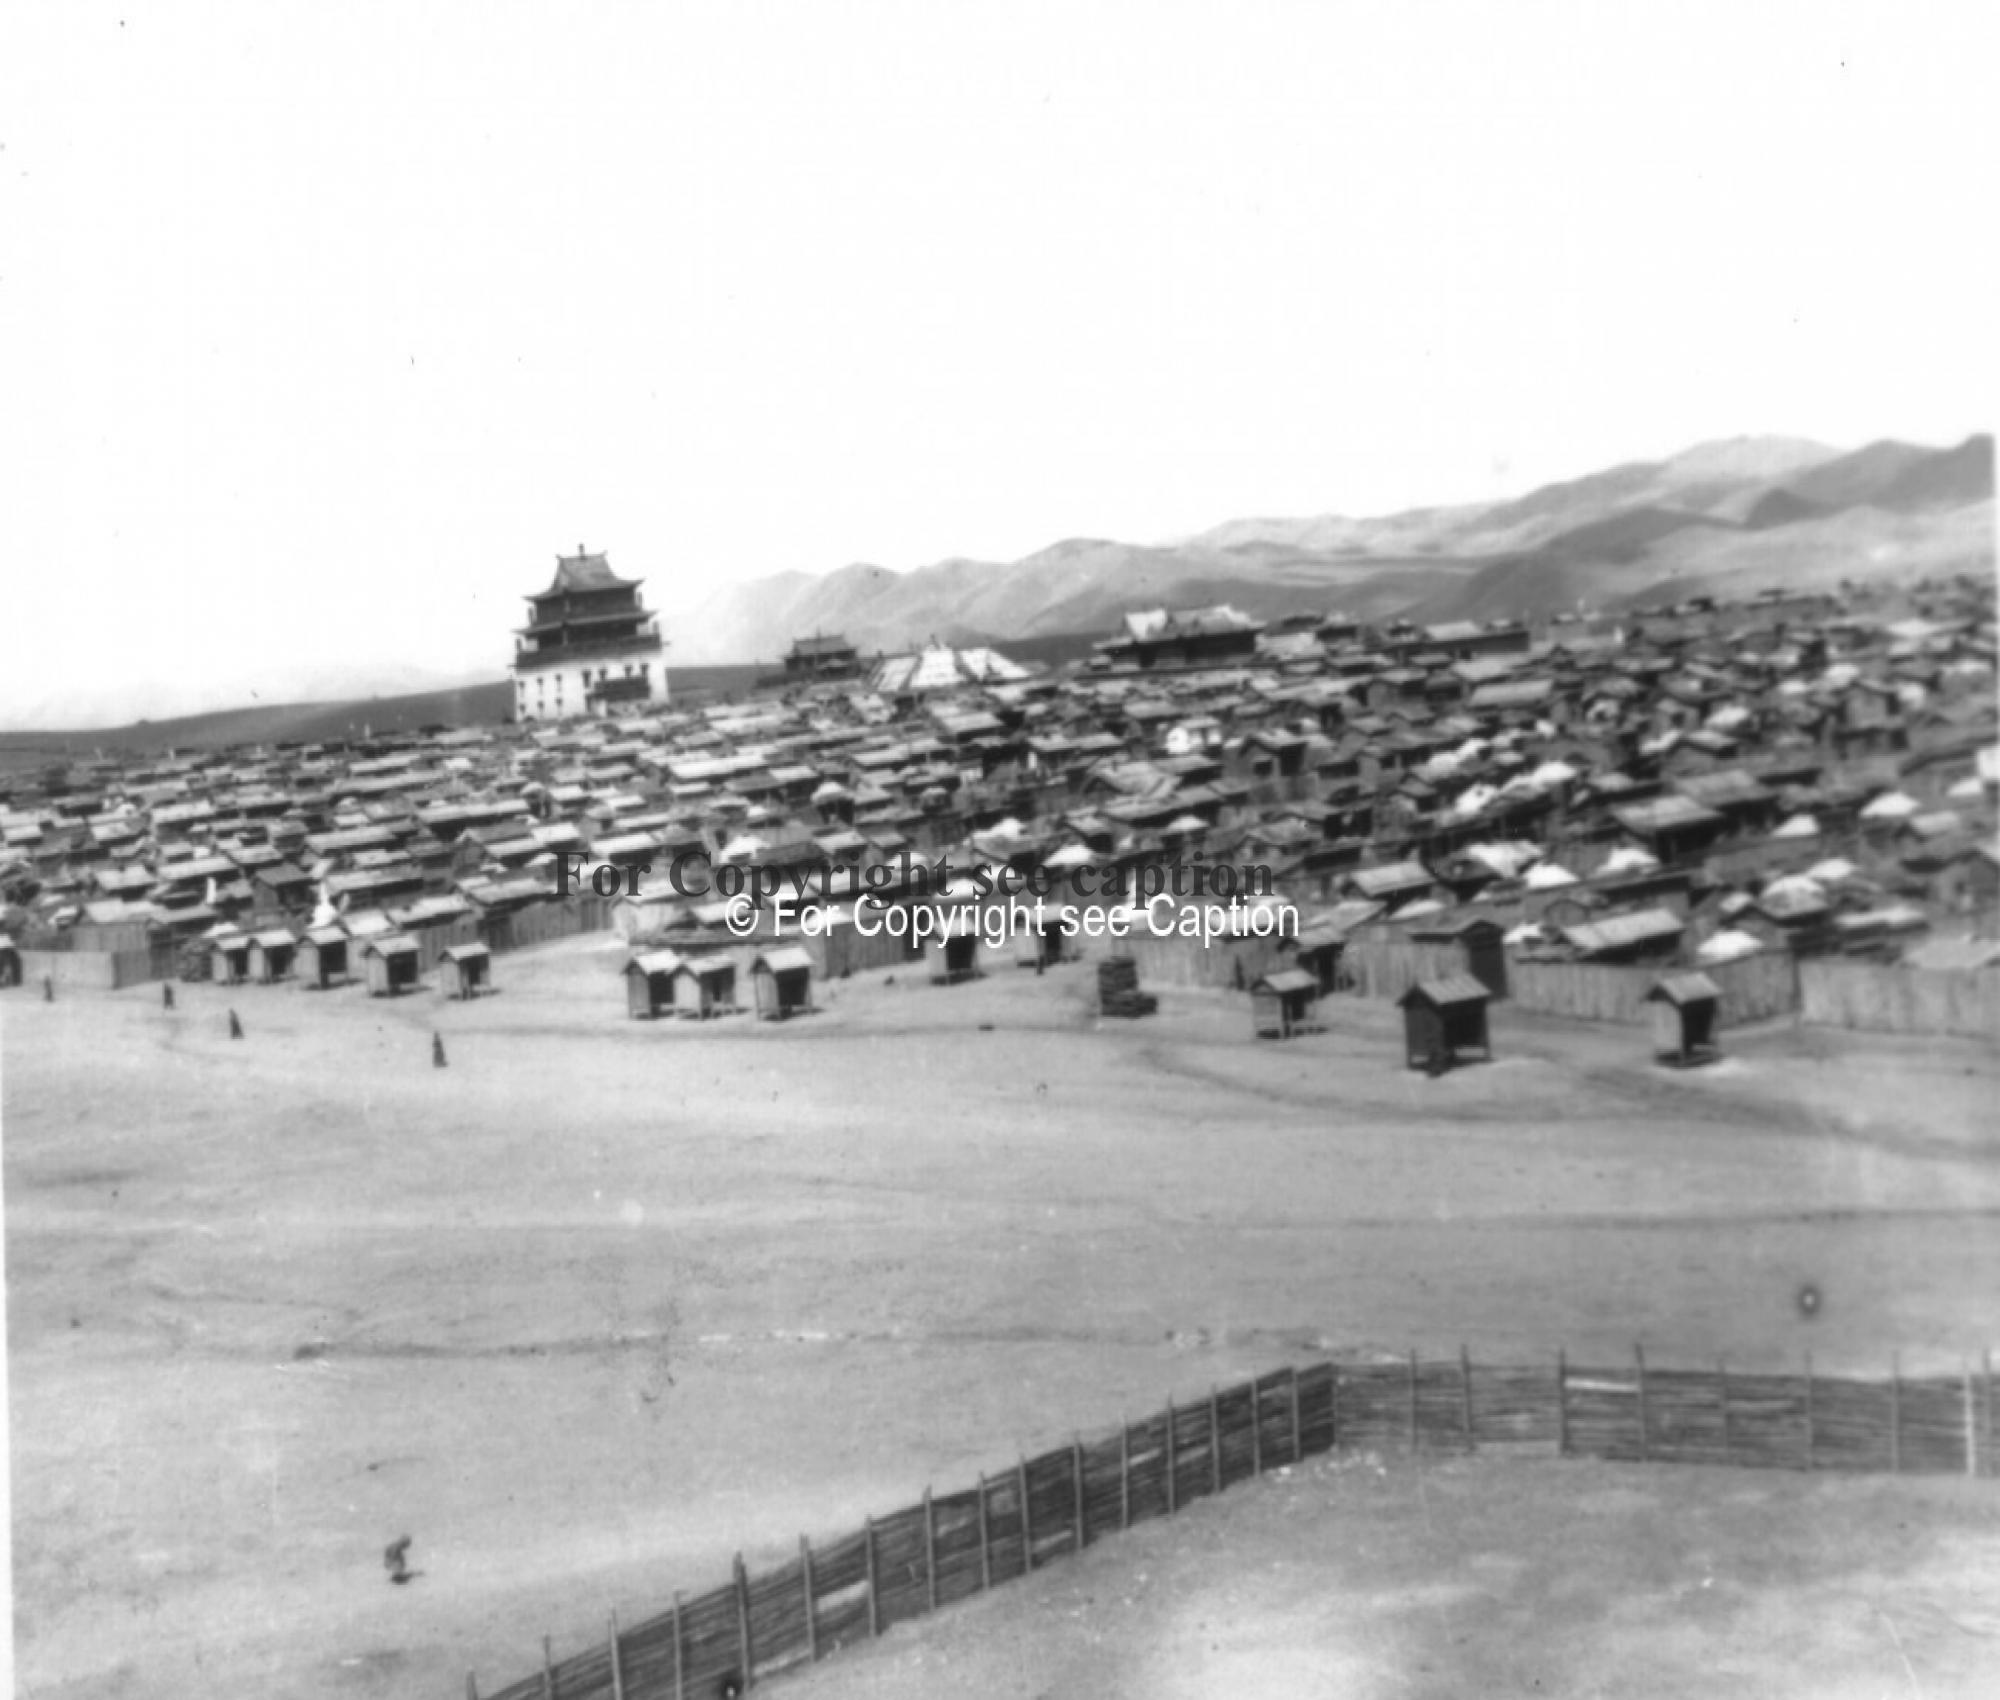 Gandan monastery and its circumambulation road (goroo) from the South-East. Film Archives K-24228